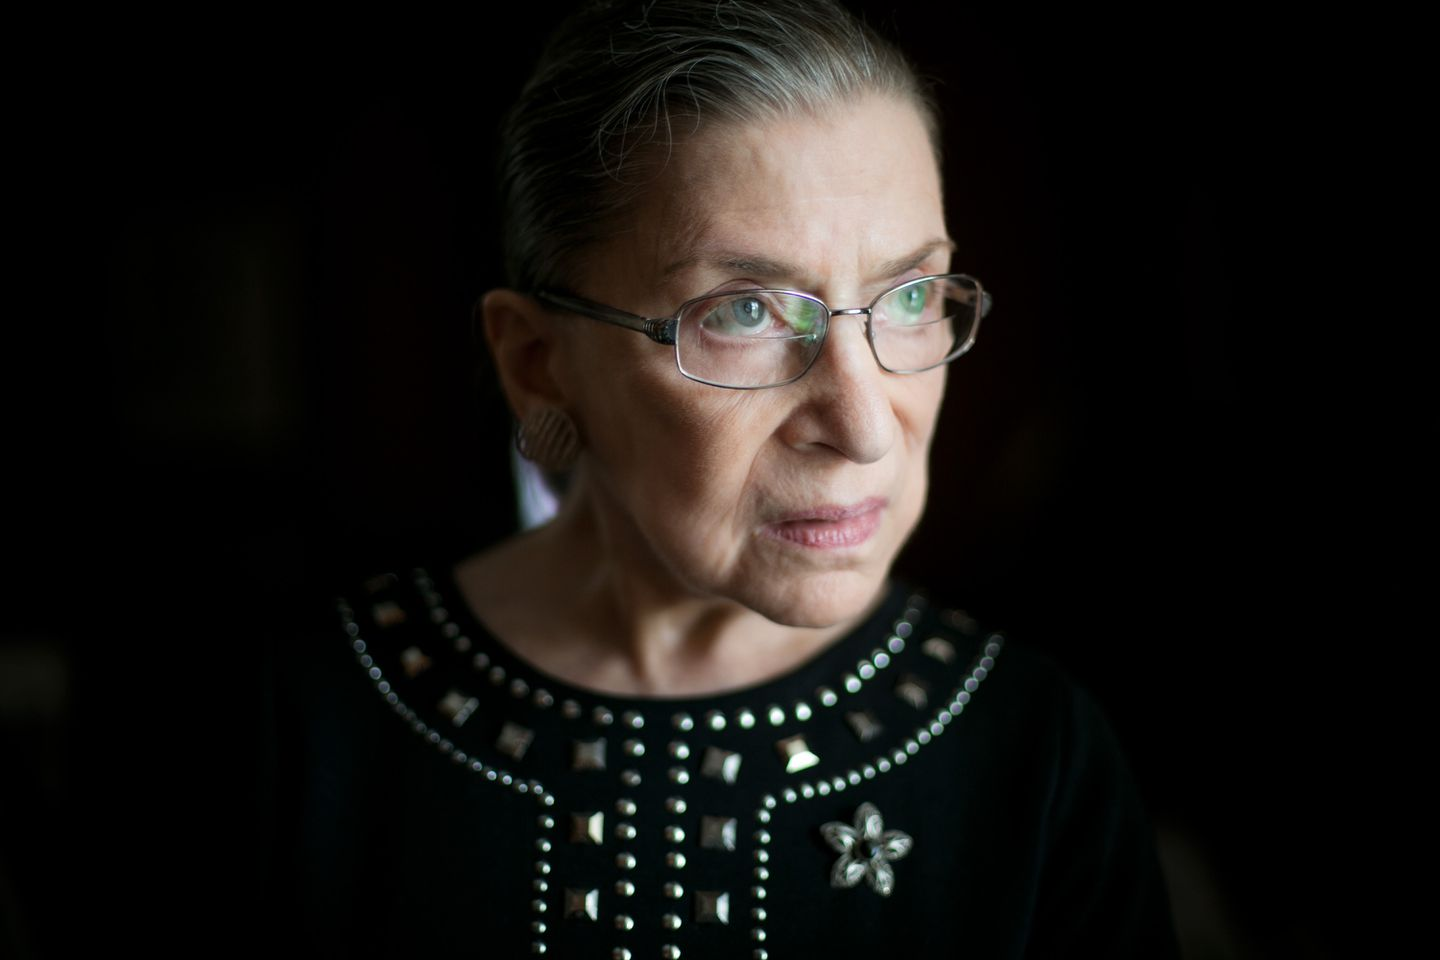 Supreme Court Justice Ruth Bader Ginsburg dies of metastatic pancreatic  cancer at 87 - The Boston Globe